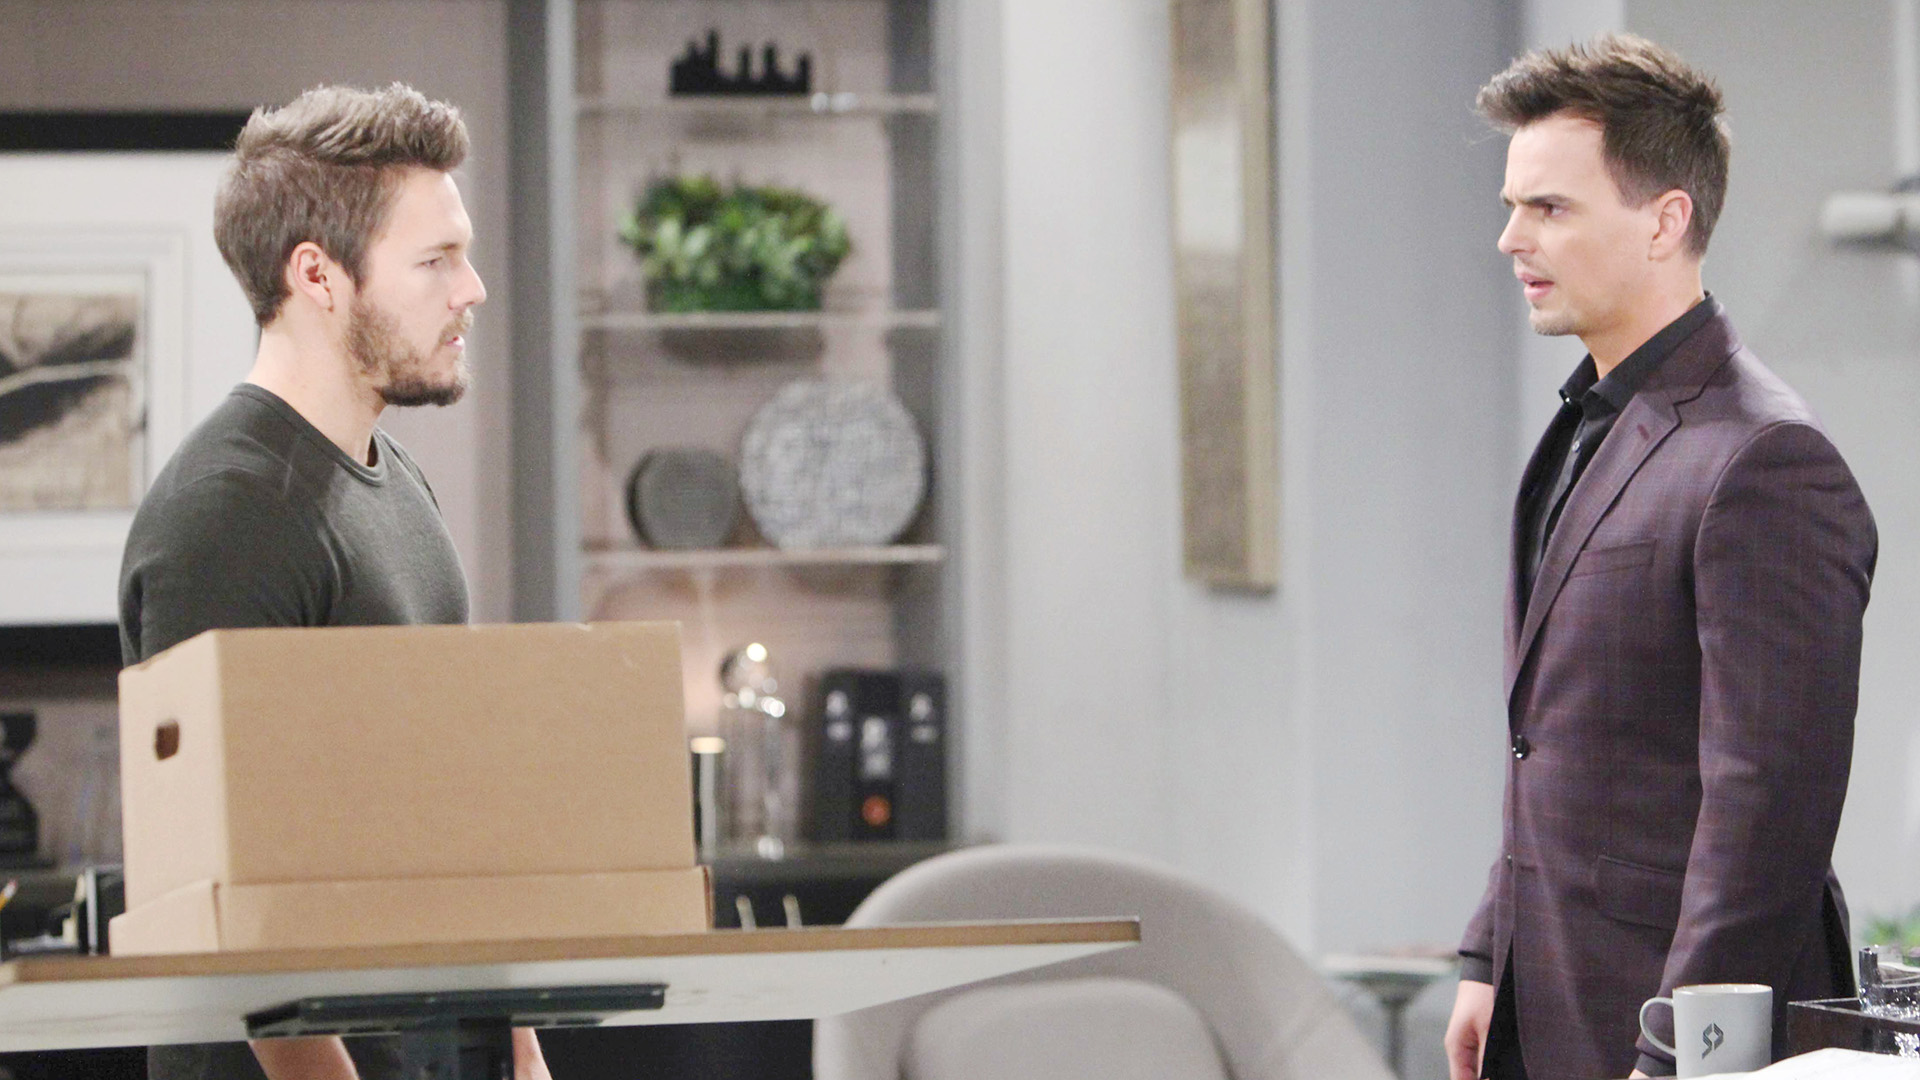 Liam floors Wyatt by sharing the news that their father, Bill, slept with Liam's wife, Steffy.